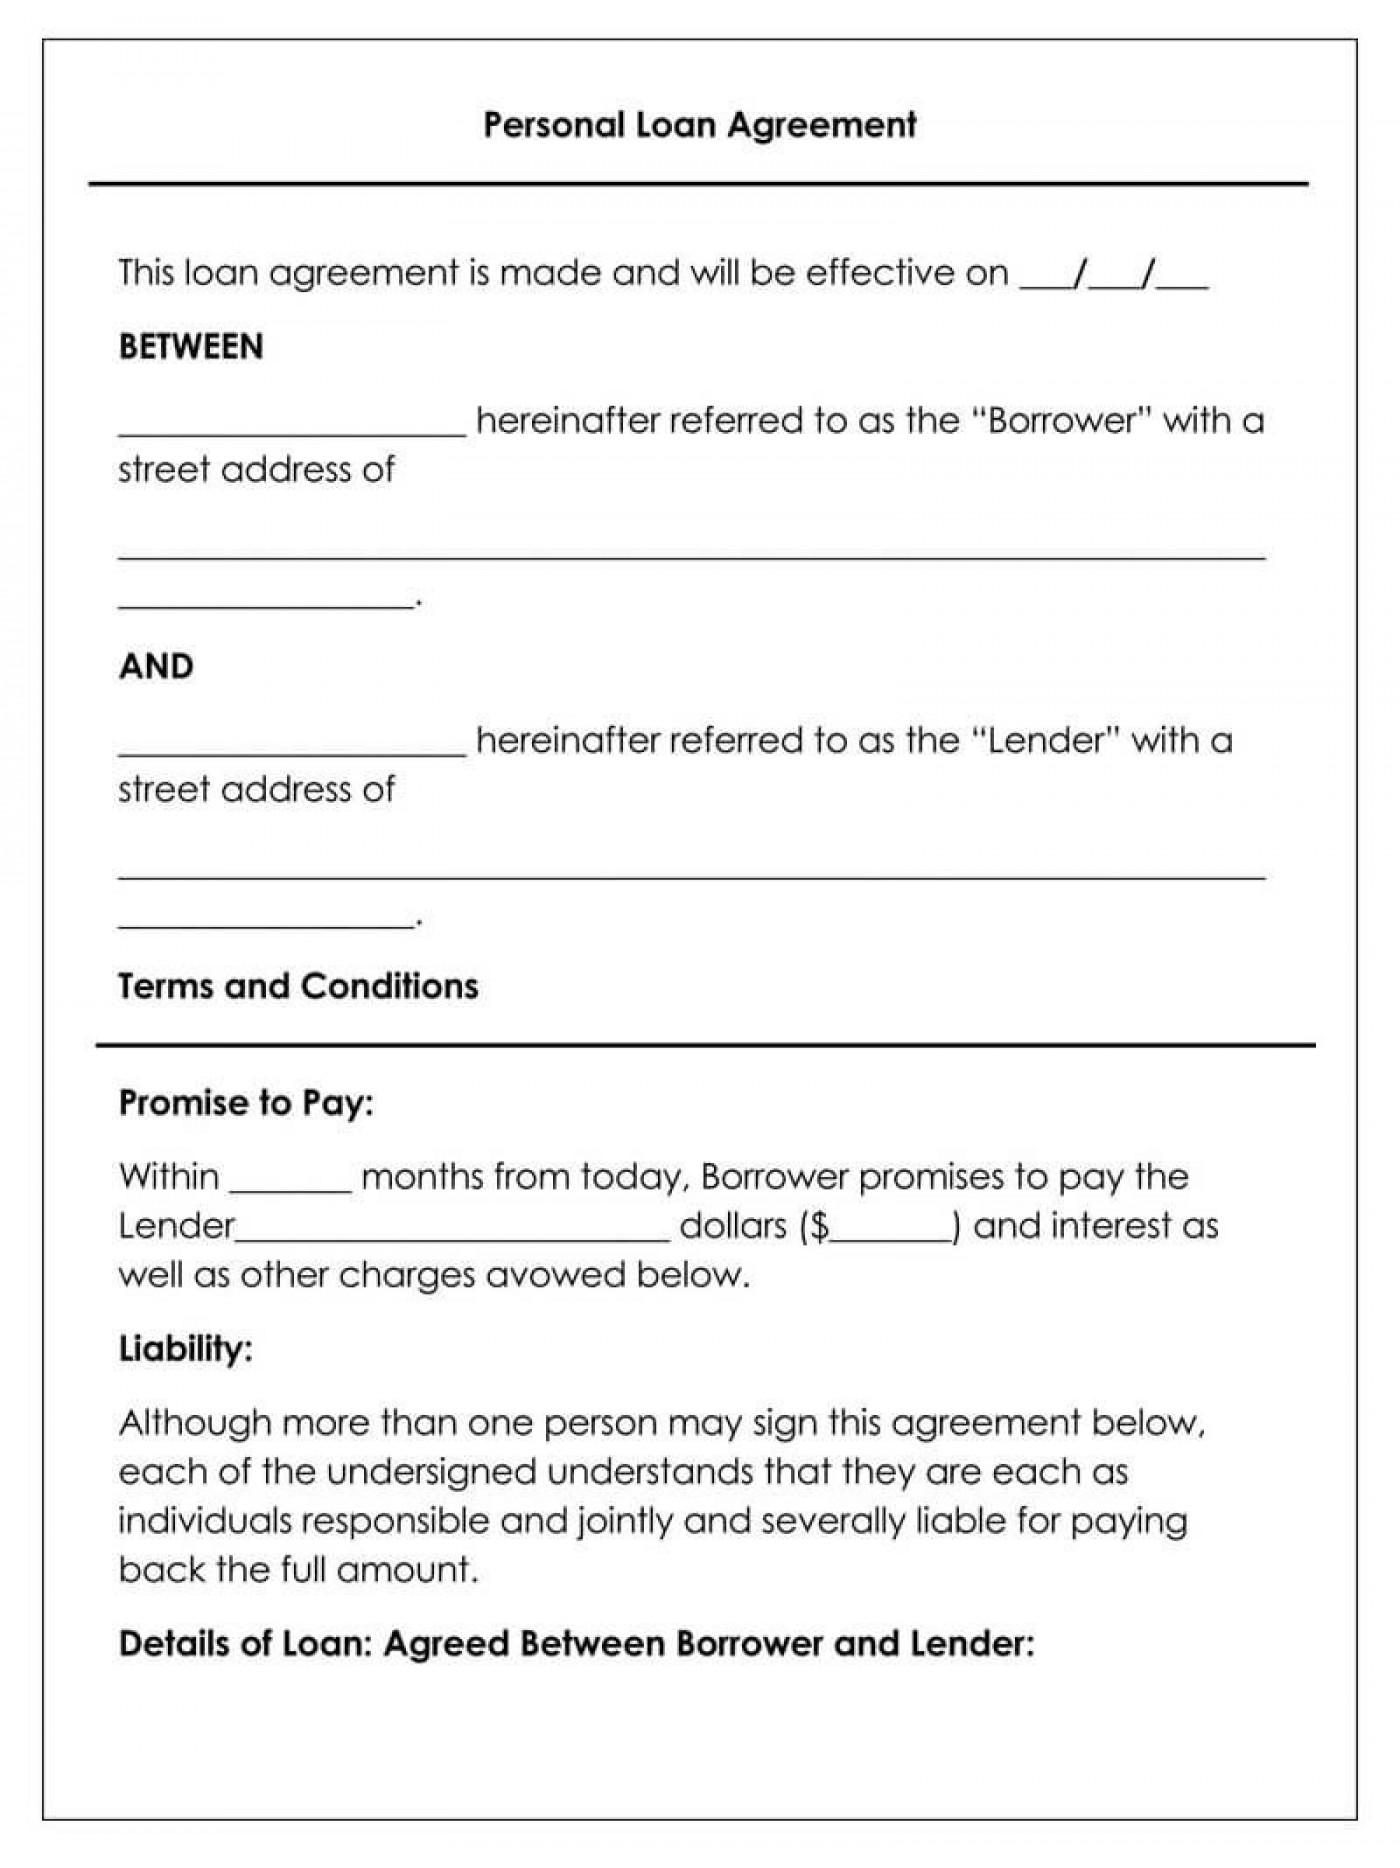 008 Fearsome Loan Agreement Template Free Image  Wording Family Uk Personal Australia1400